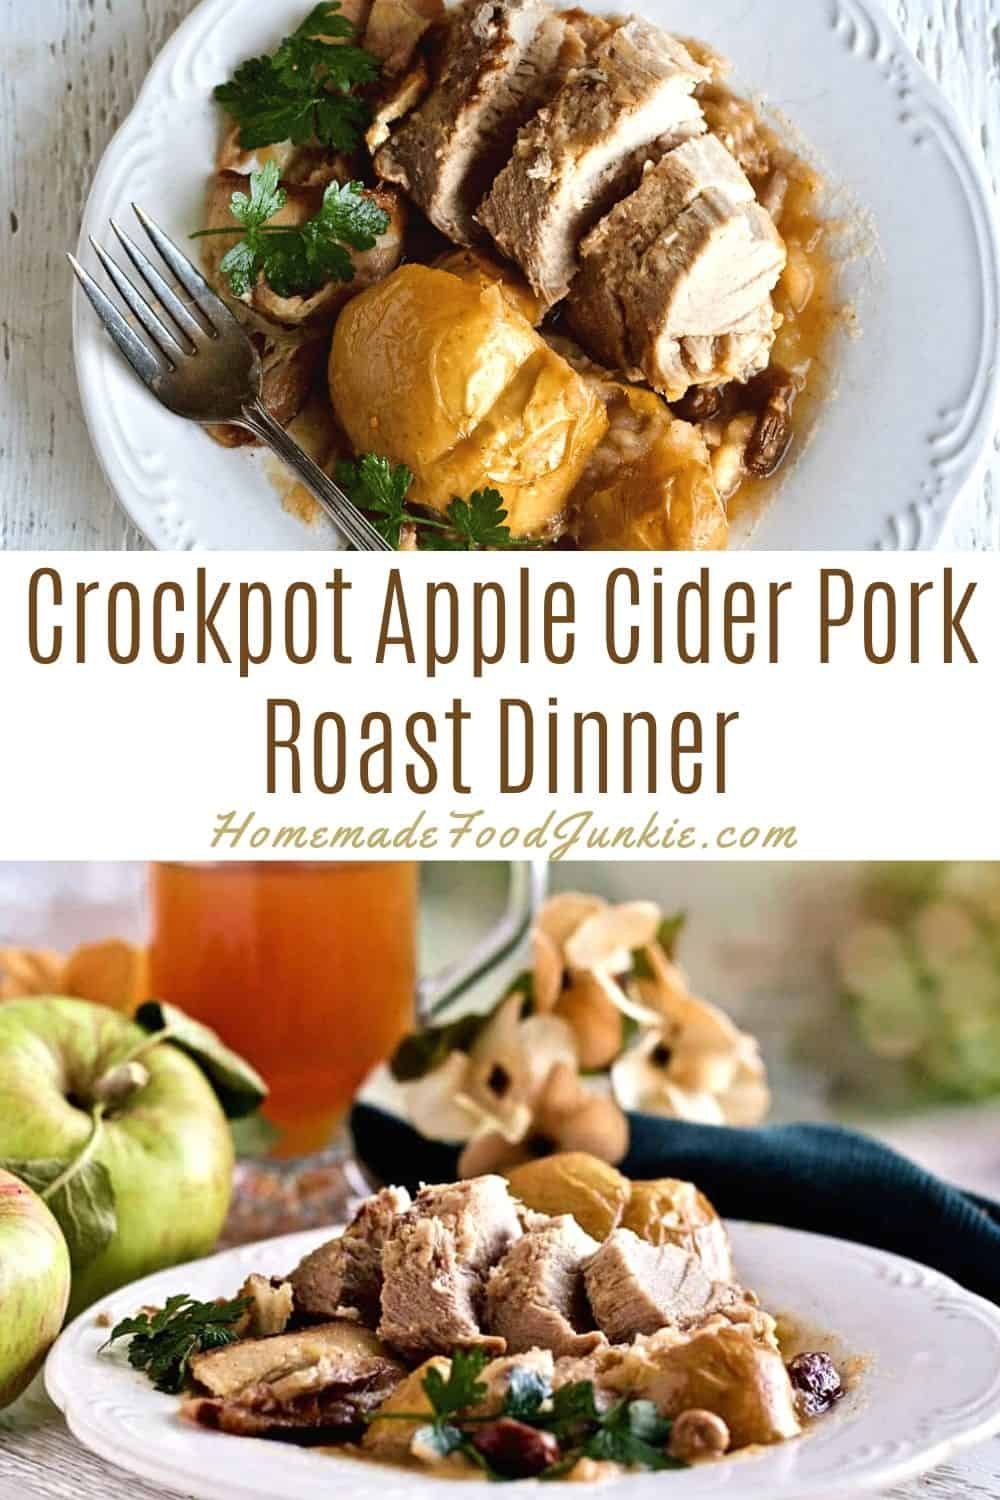 Crockpot apple cider pork roast dinner-pin image